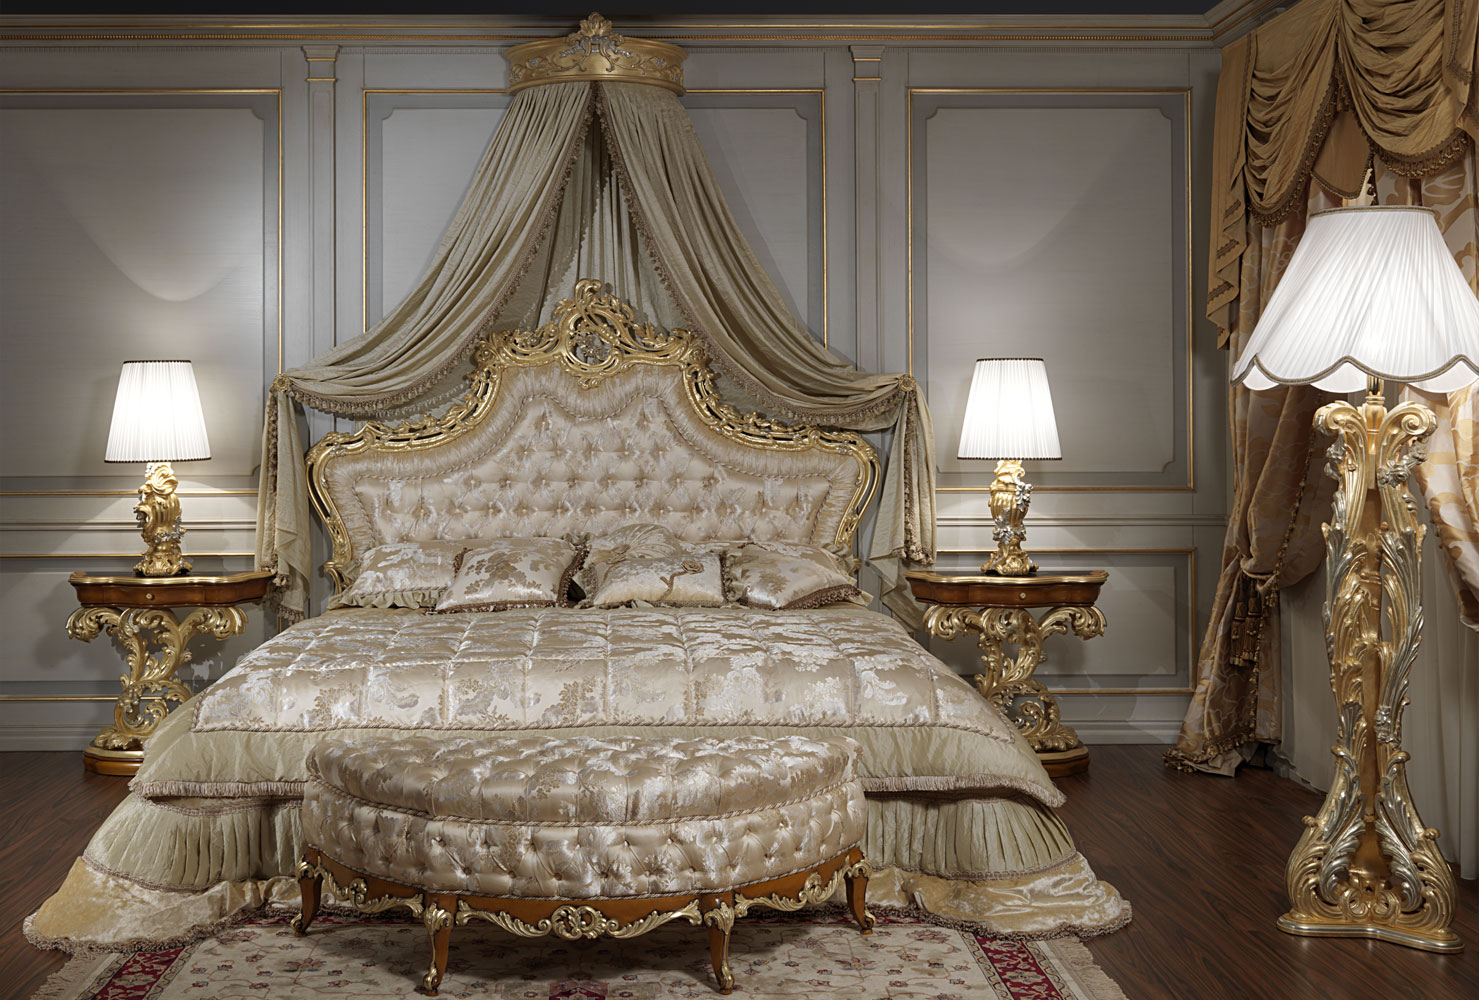 luxury classic bedroom roman baroque style. Black Bedroom Furniture Sets. Home Design Ideas